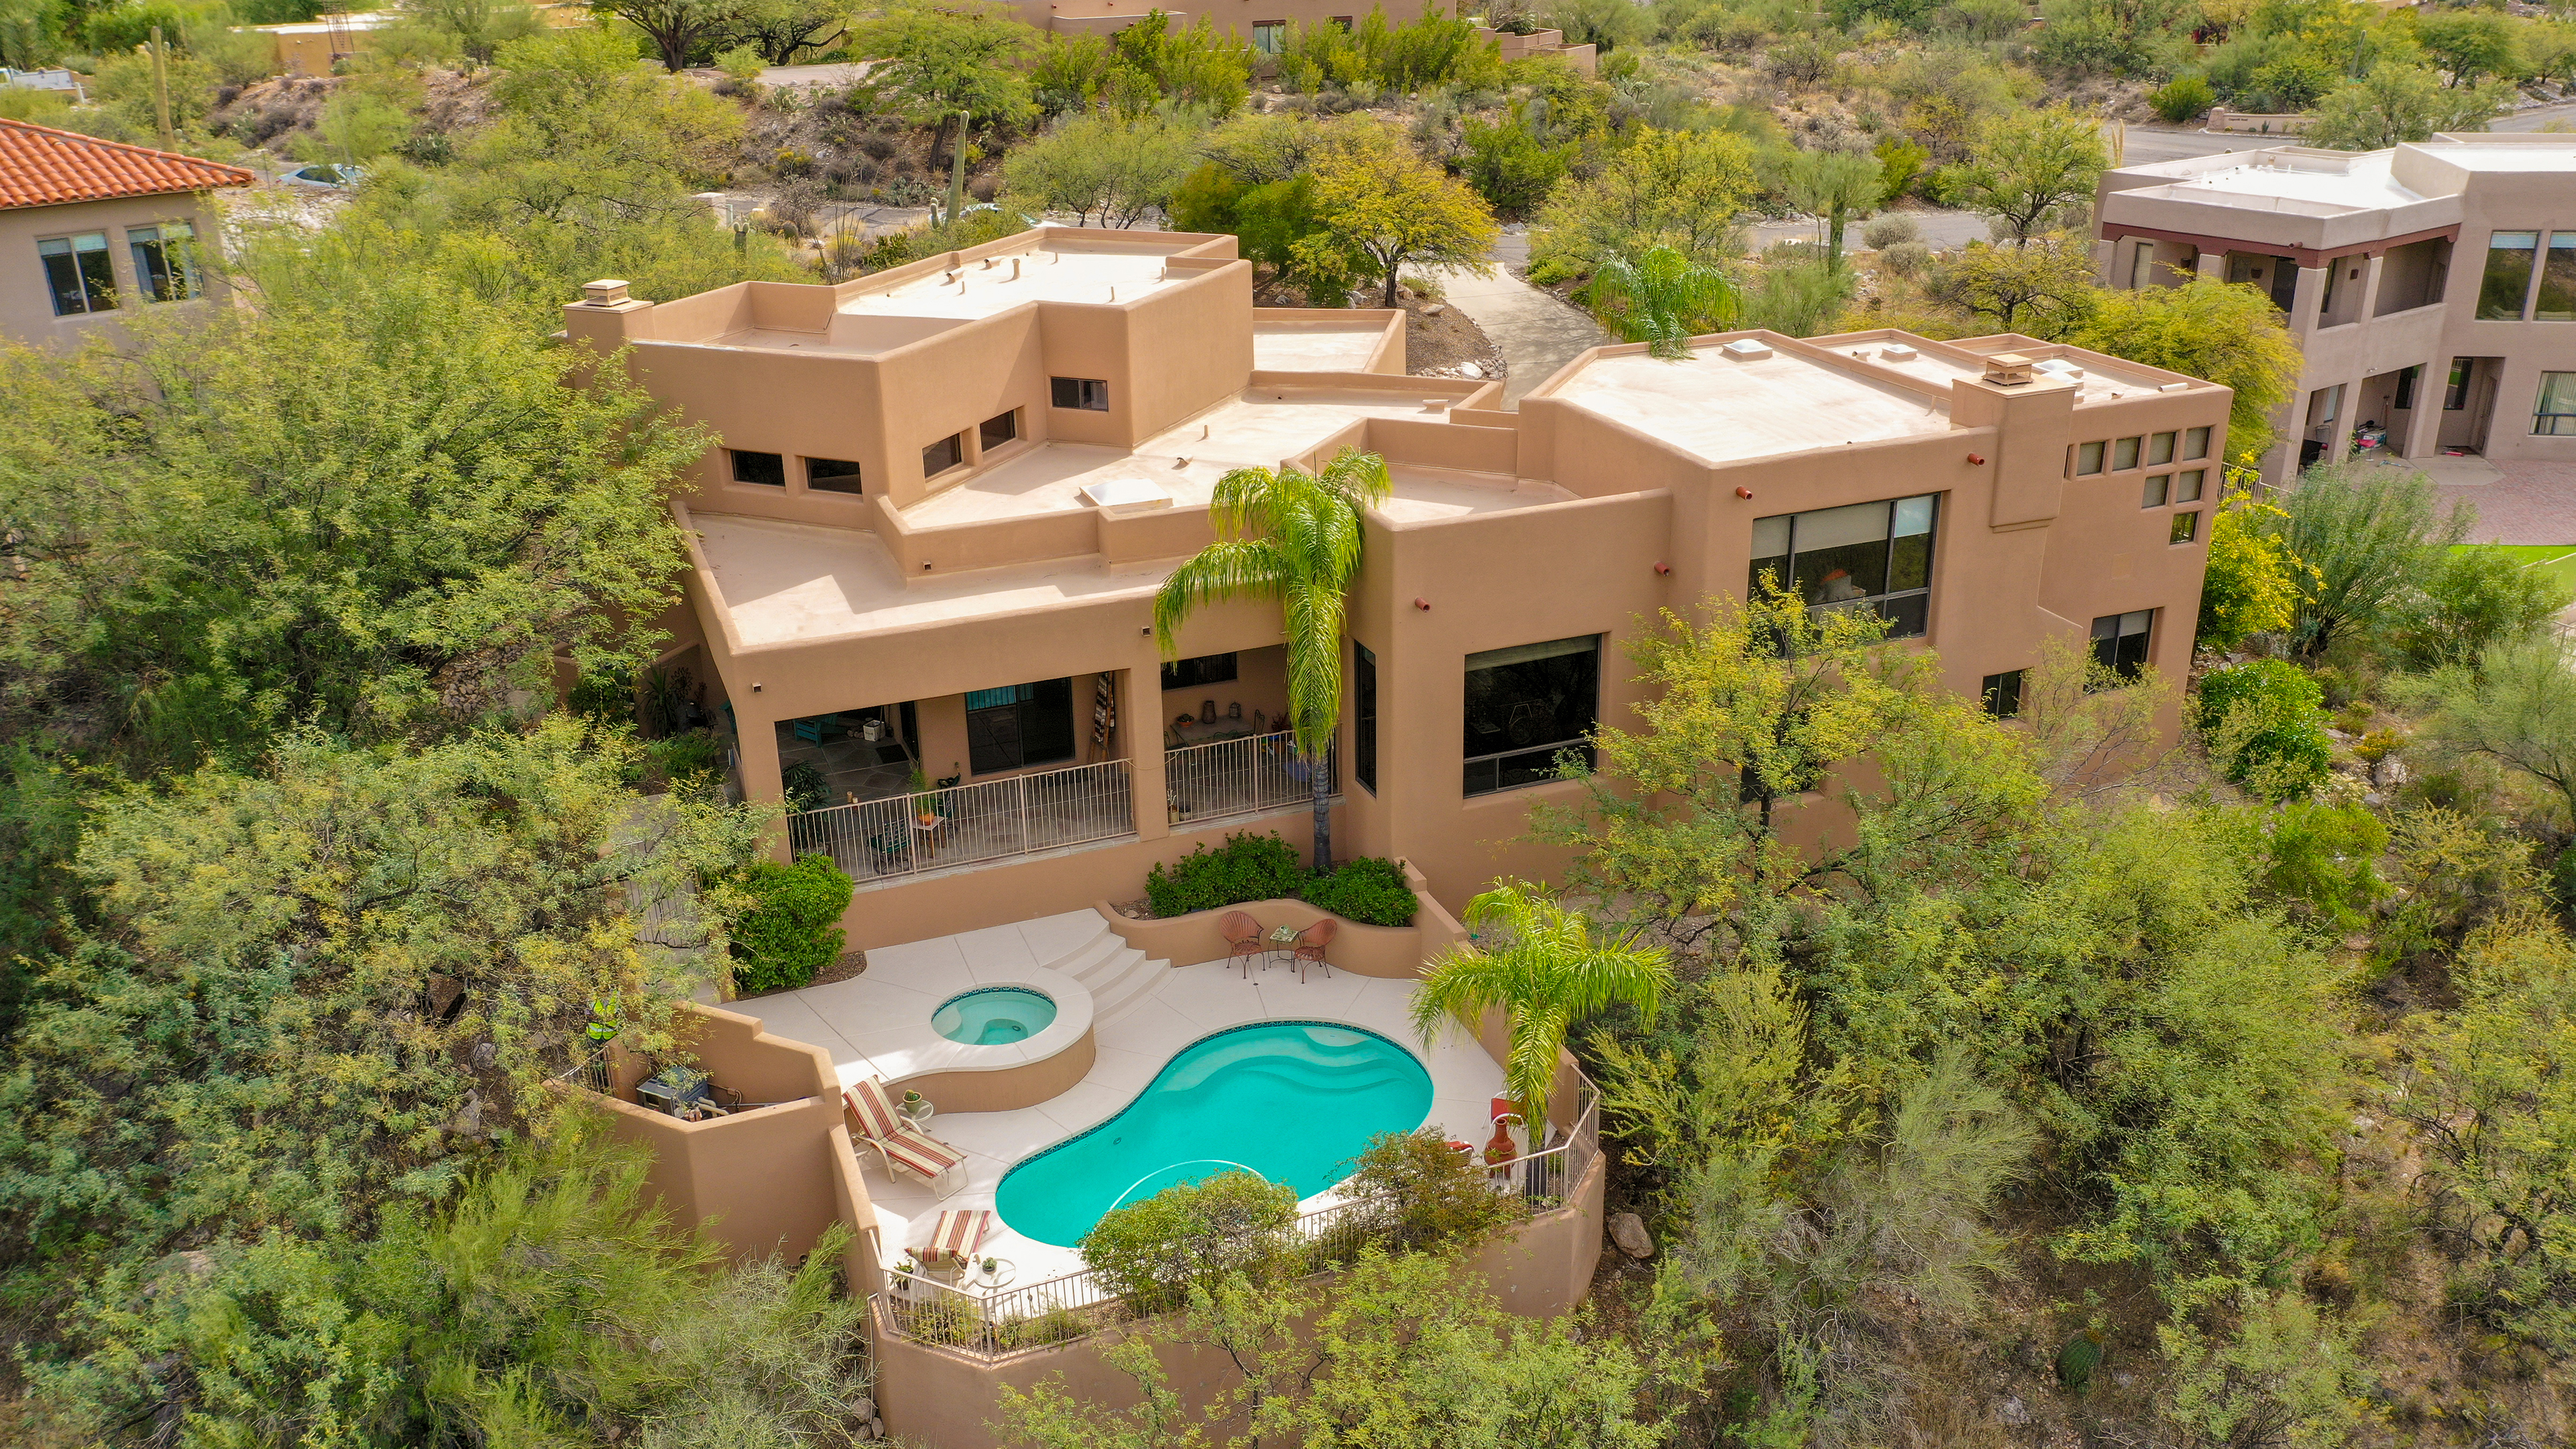 Catalina Foothills: 85750 | Gomez Realty Group